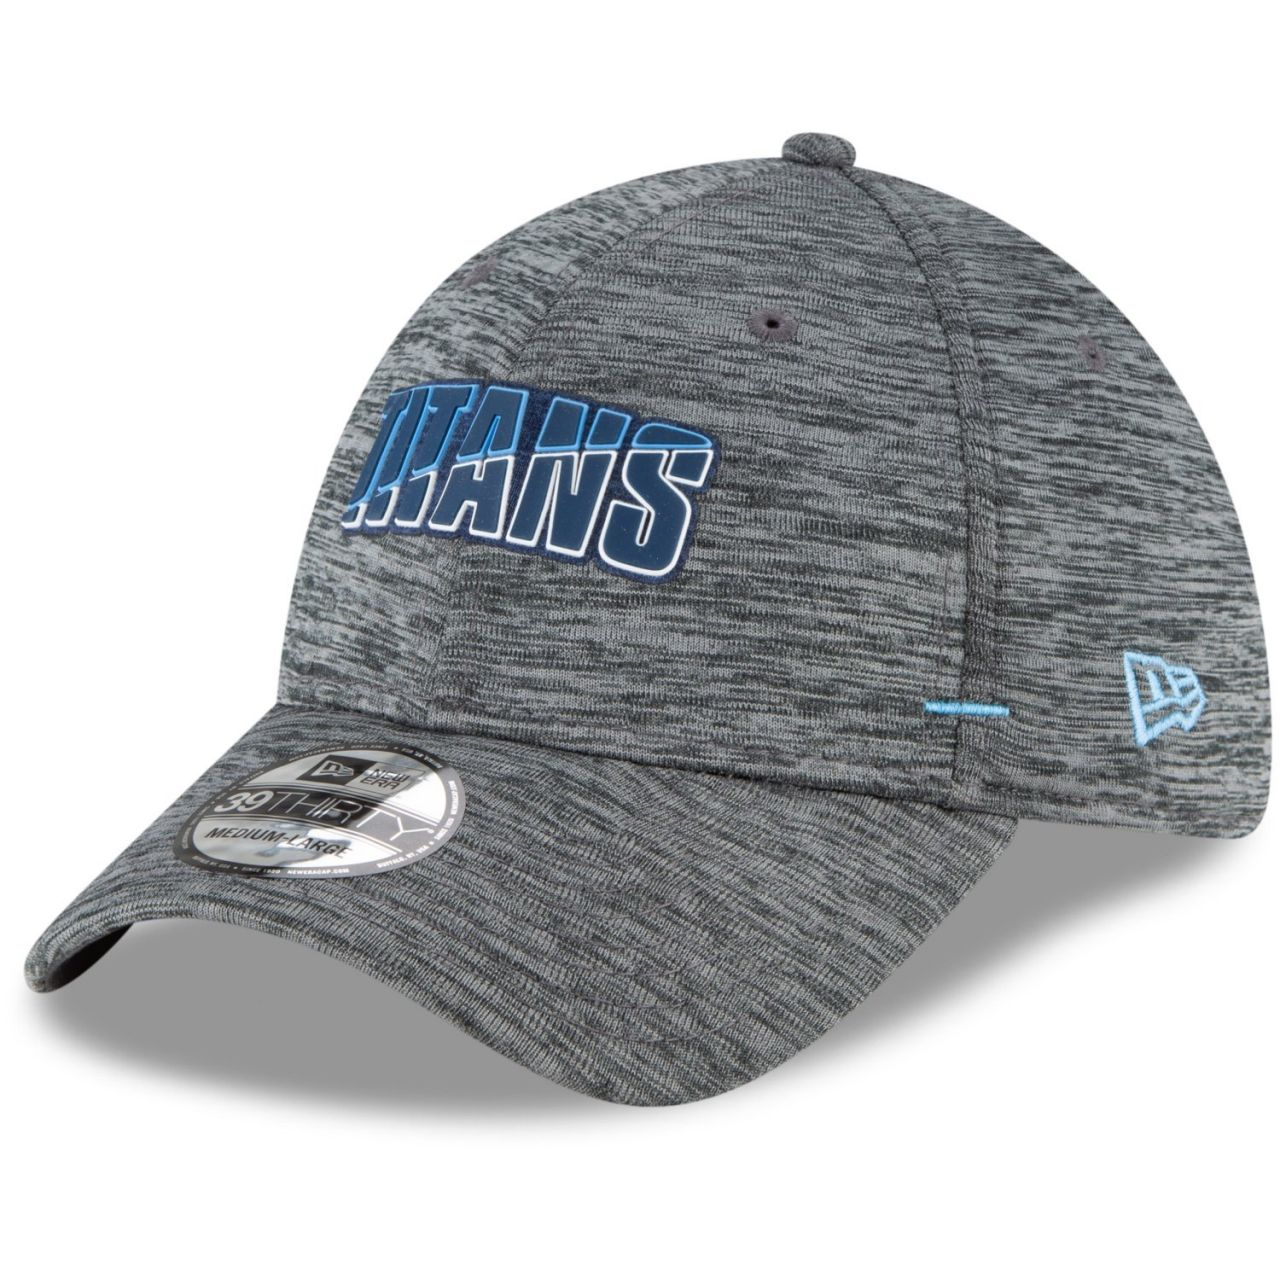 amfoo - New Era 39Thirty Cap - NFL CAMP Tennessee Titans